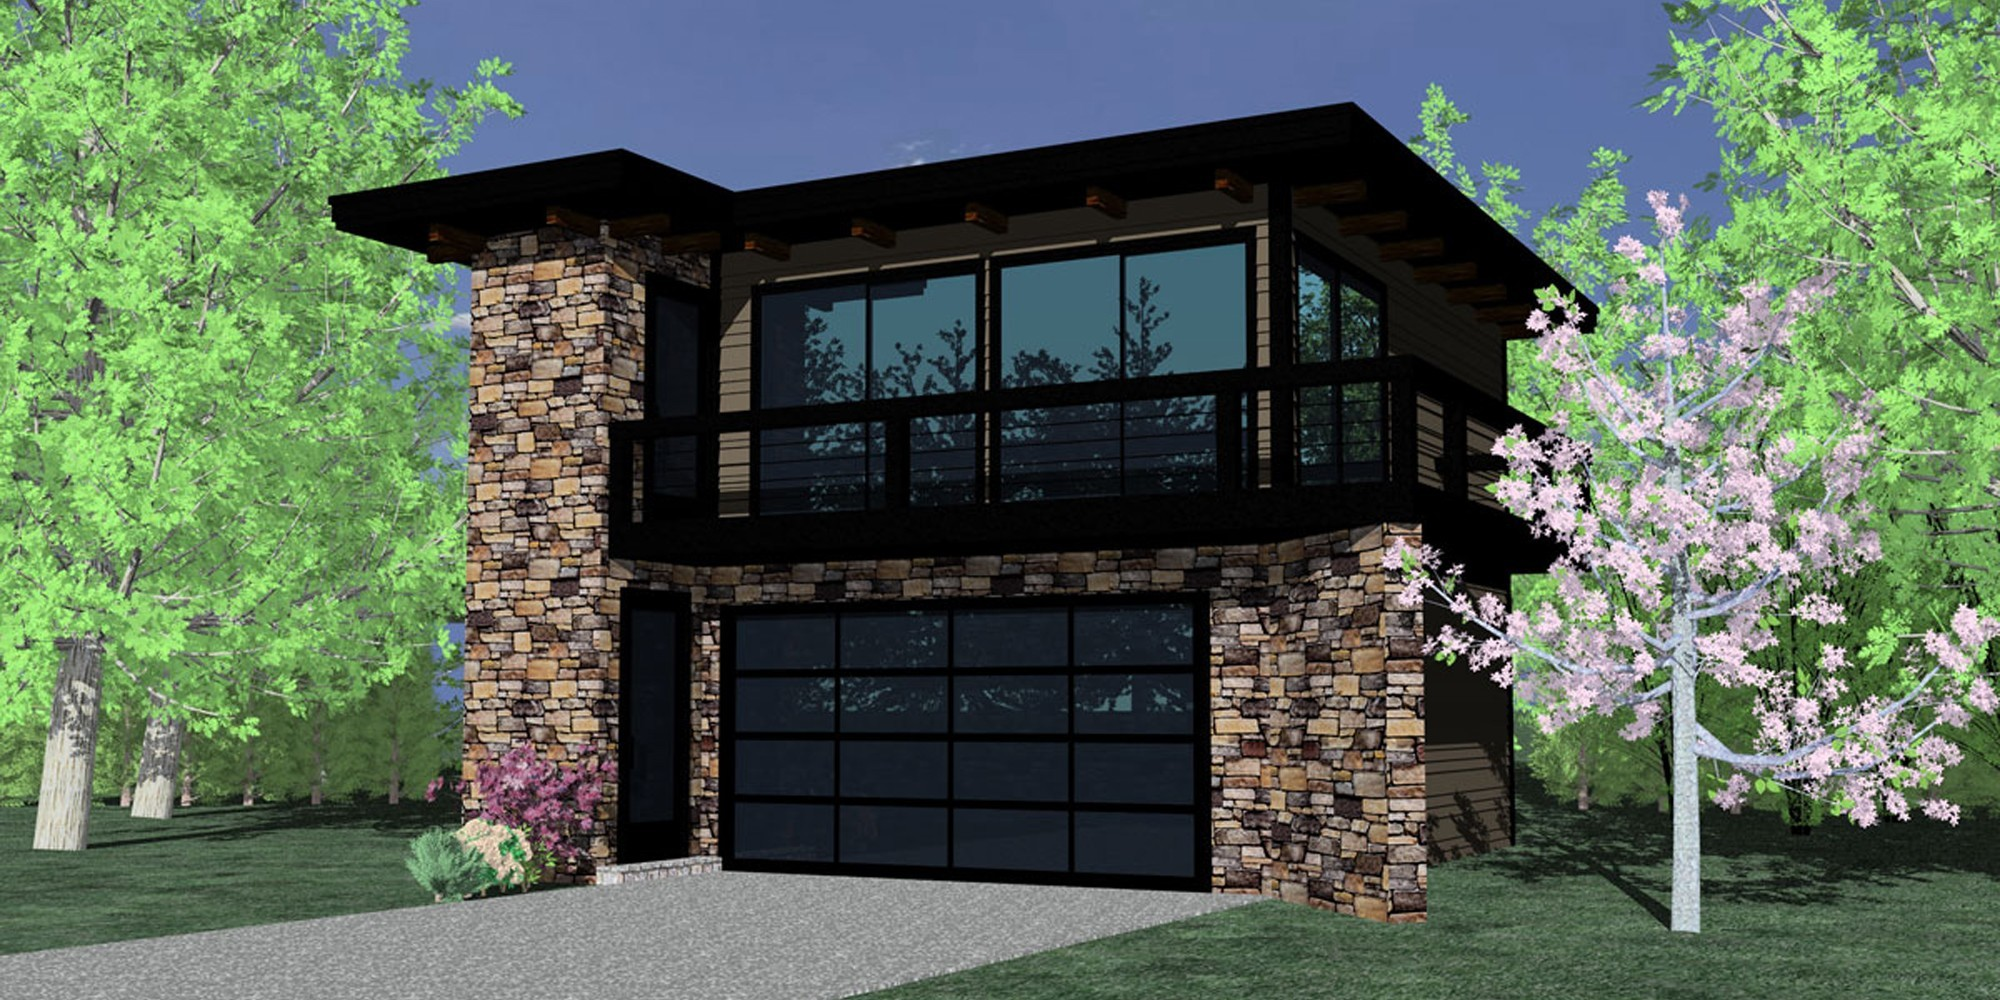 Modern Home Plans & Unique Modern House Design Plans with Photos on 1890 folk victorian homes, 1890 ranch homes, 1890 american homes, 1890 colonial revival homes,